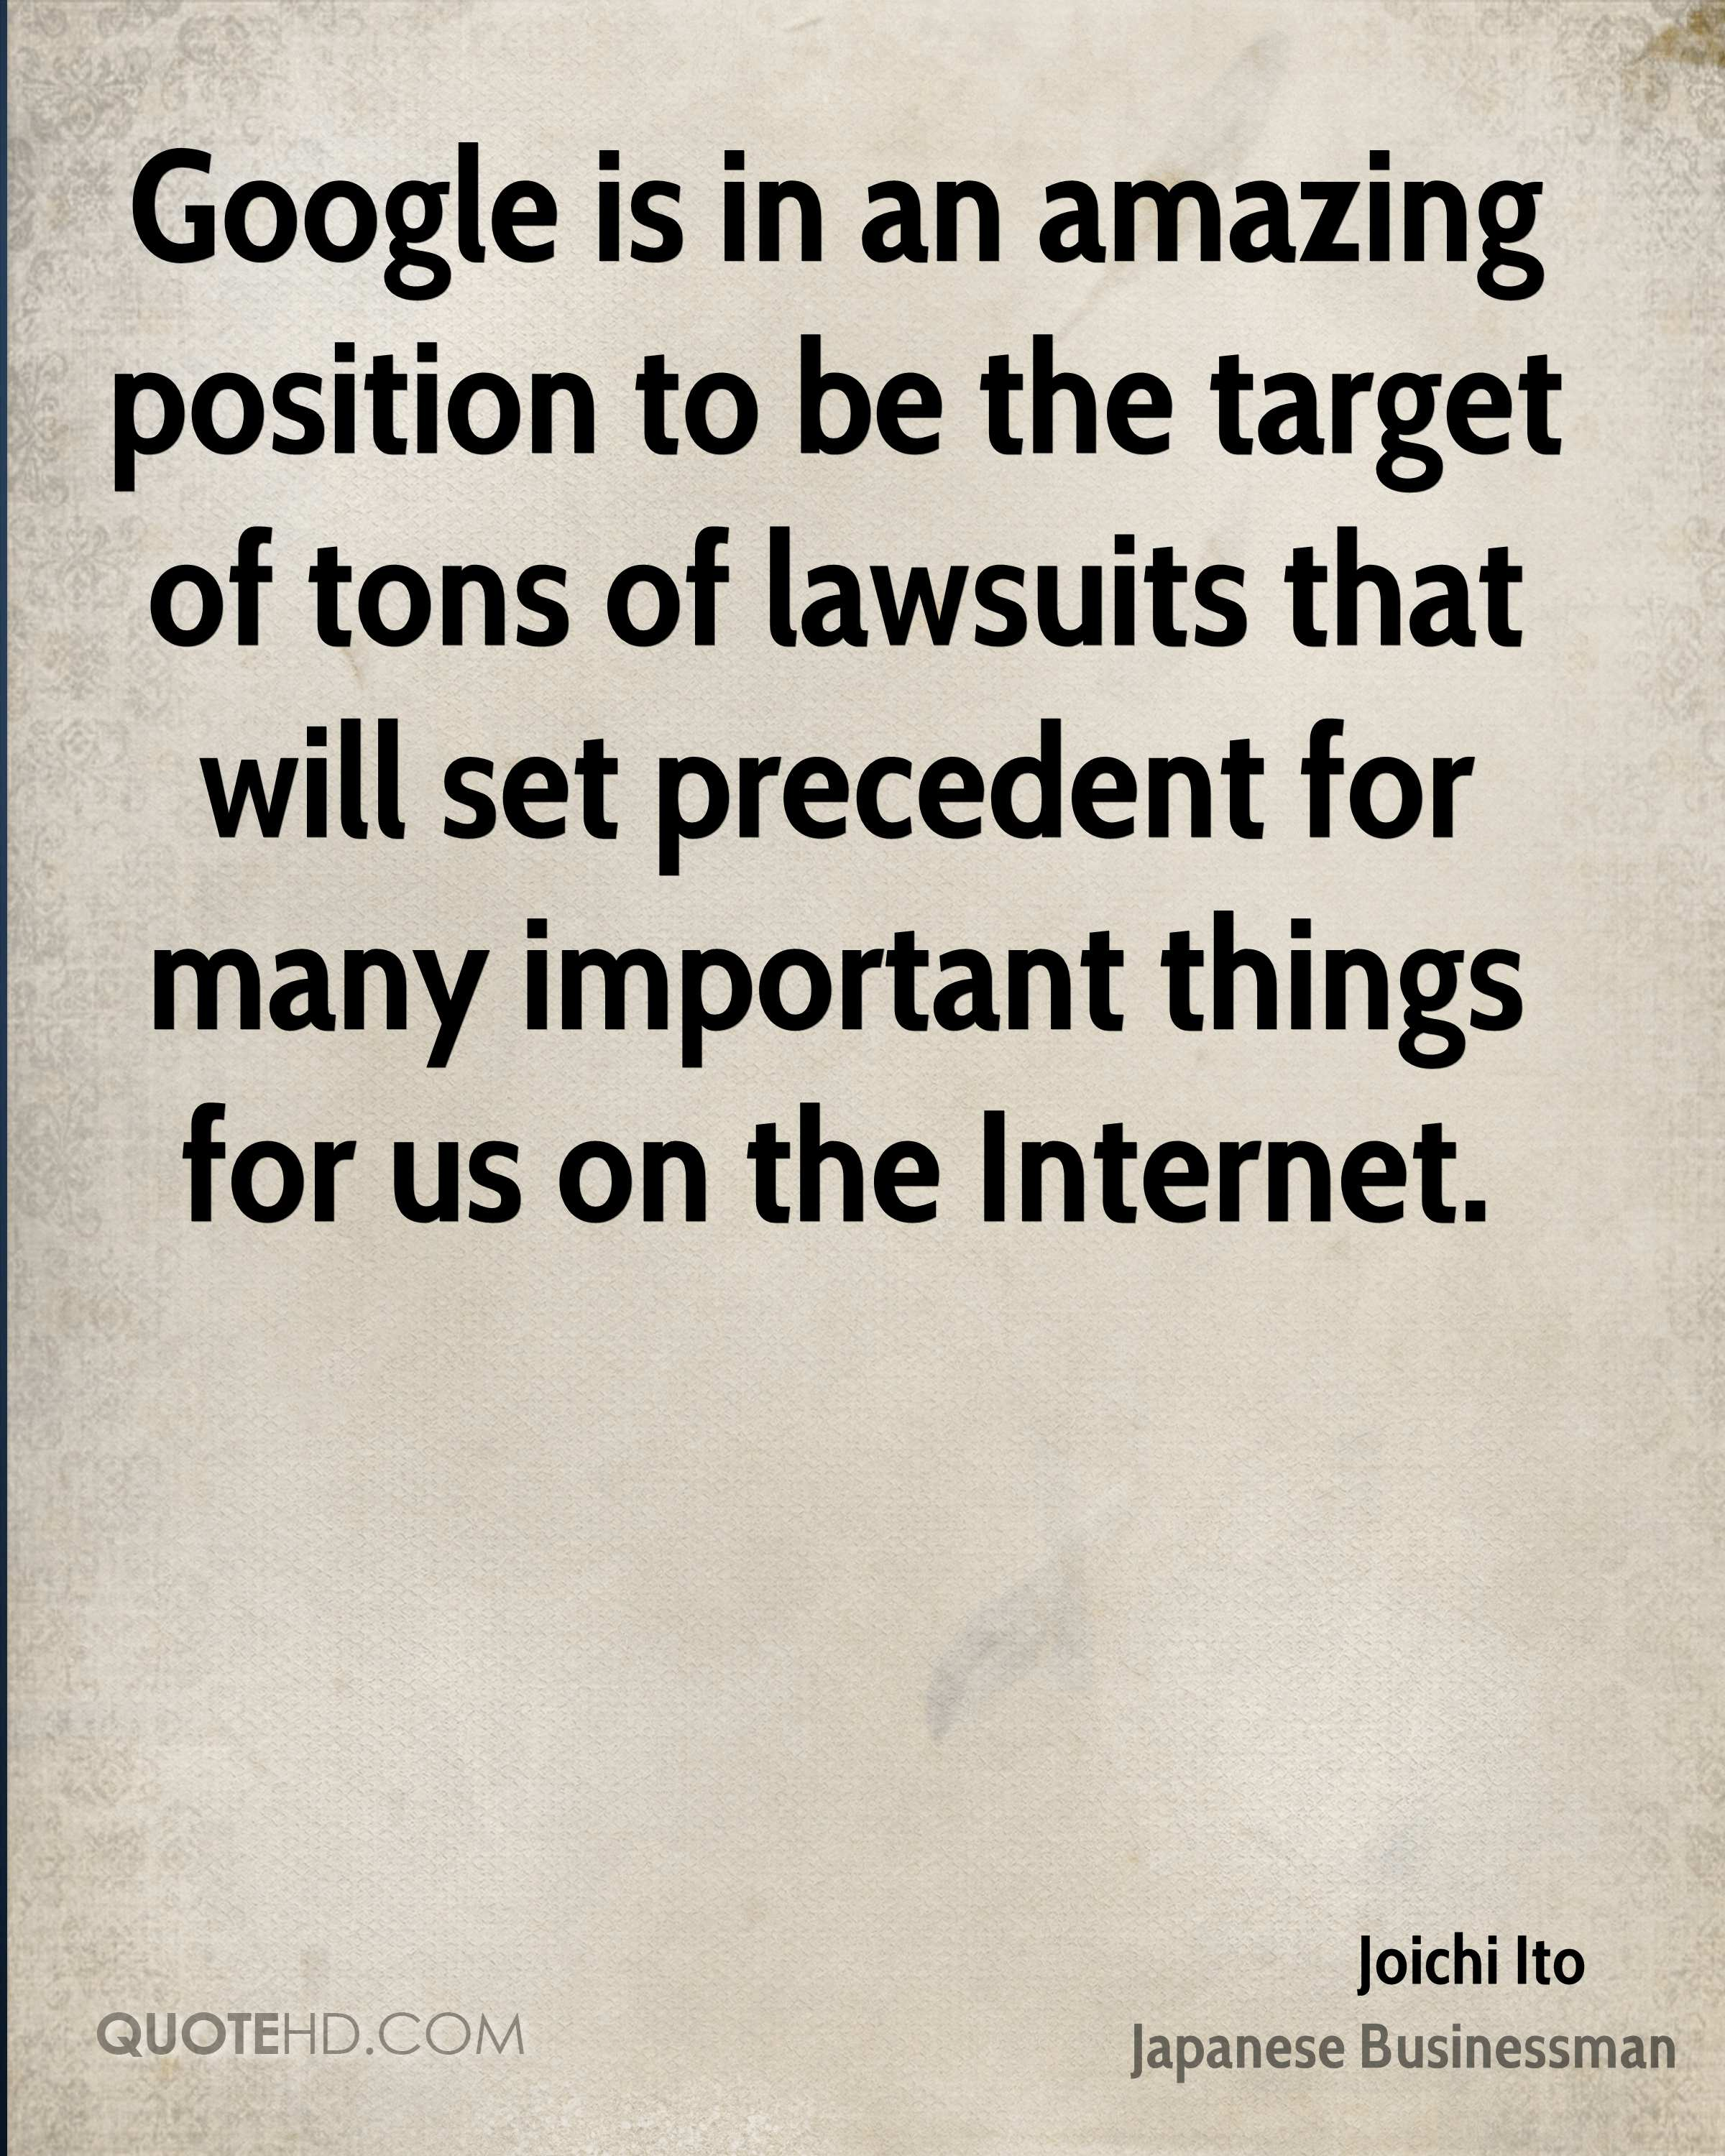 Google is in an amazing position to be the target of tons of lawsuits that will set precedent for many important things for us on the Internet.